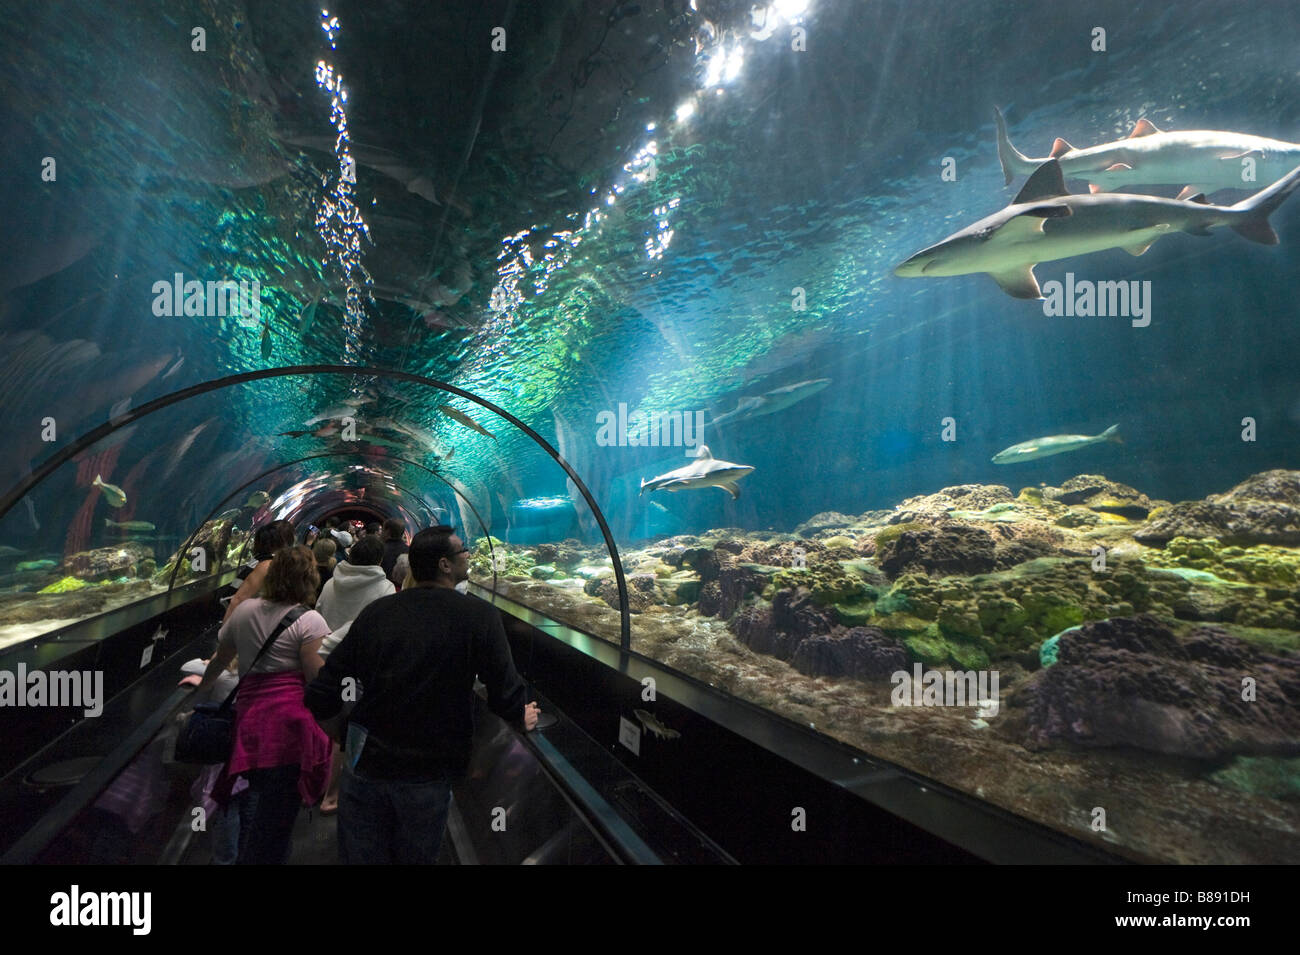 Underwater viewing tunnel at the Shark Encounter, Sea World, Orlando, Central Florida, USA - Stock Image